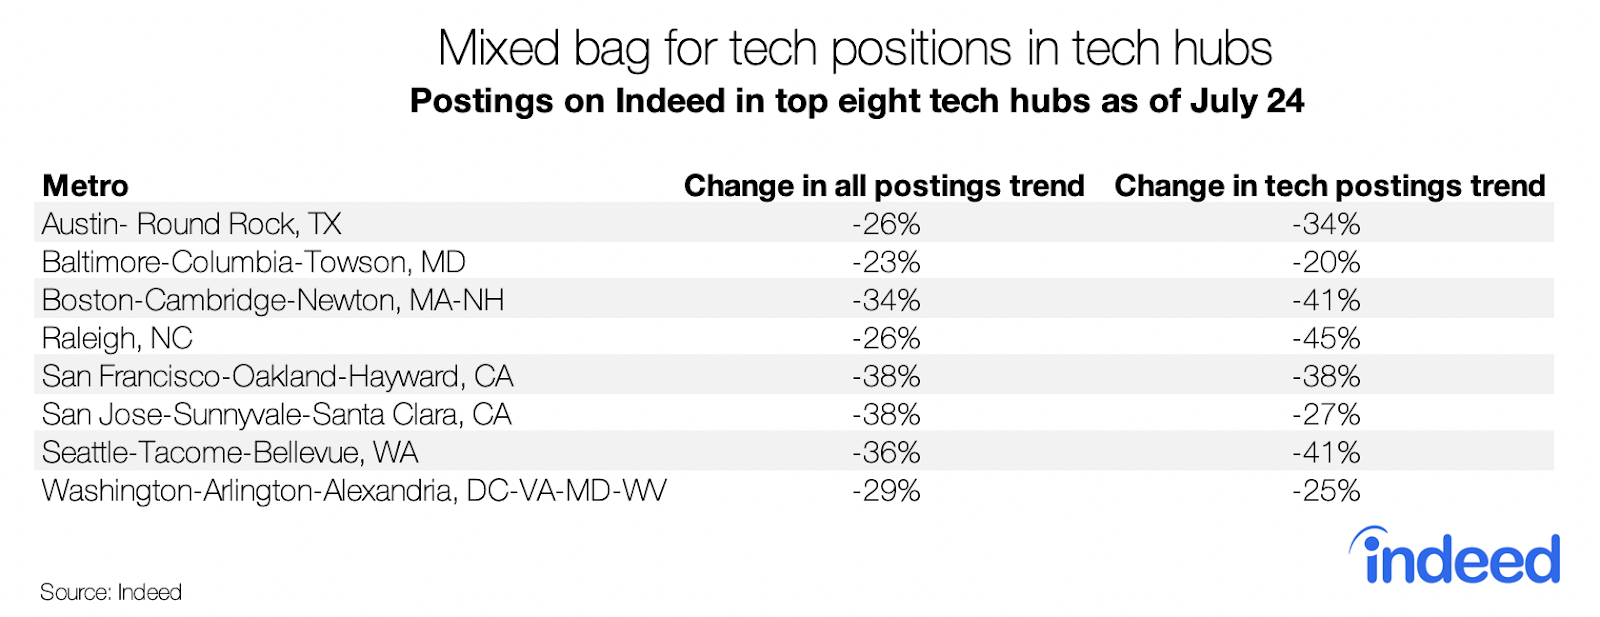 Mixed bag for tech positions in tech hubs